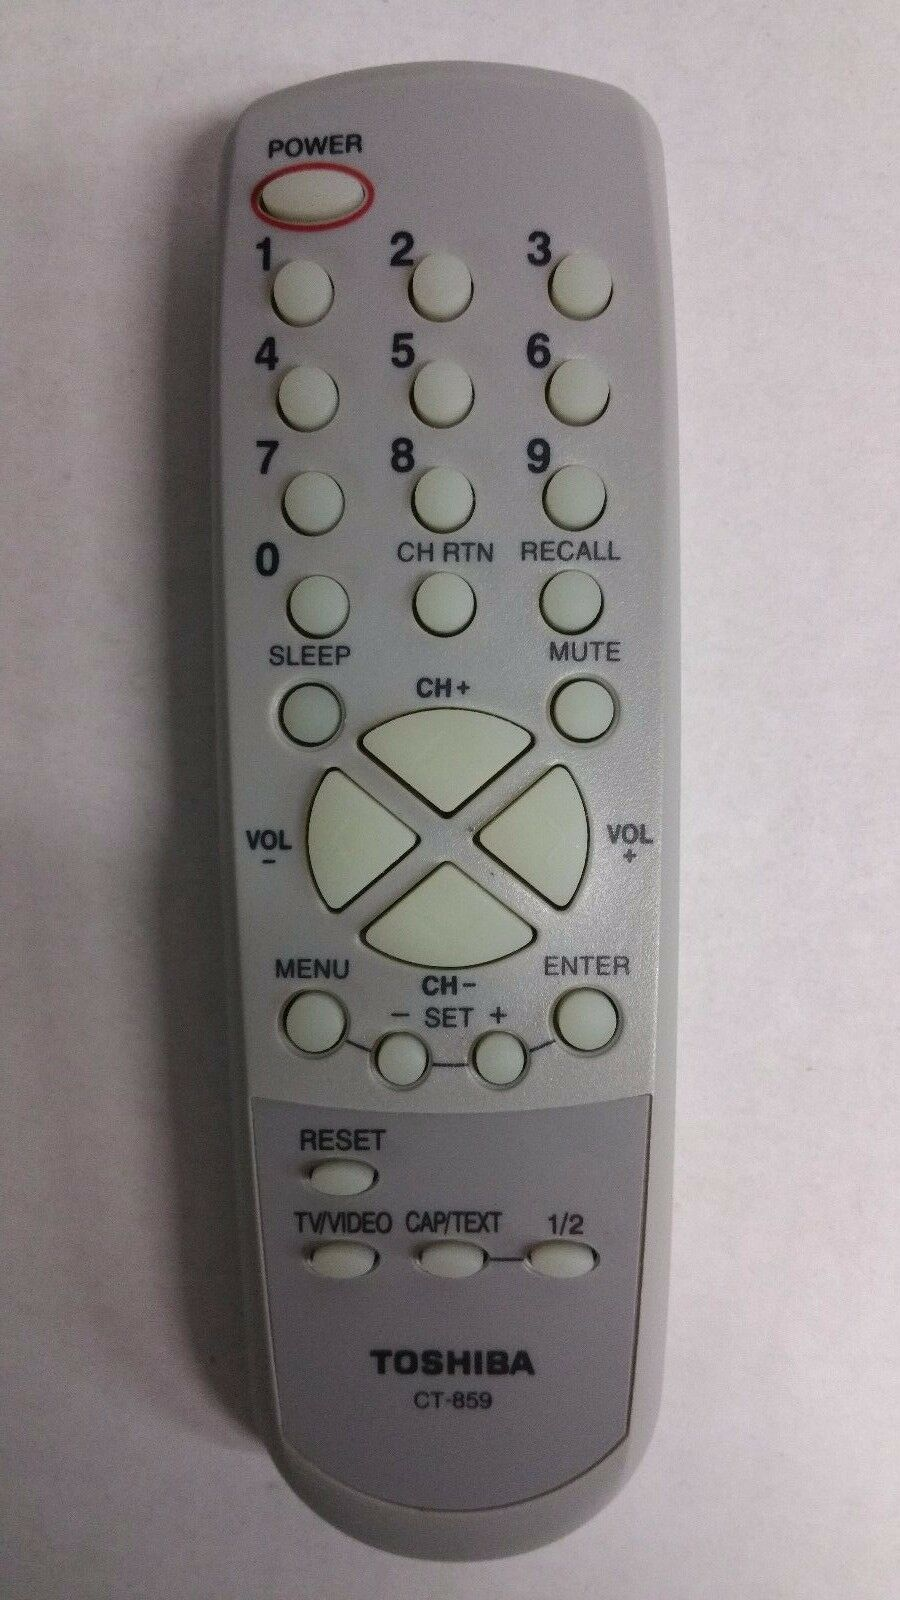 Details about Original Toshiba 19A25 19A25C 19A26 20AS26 MD2626 TV Remote  Control